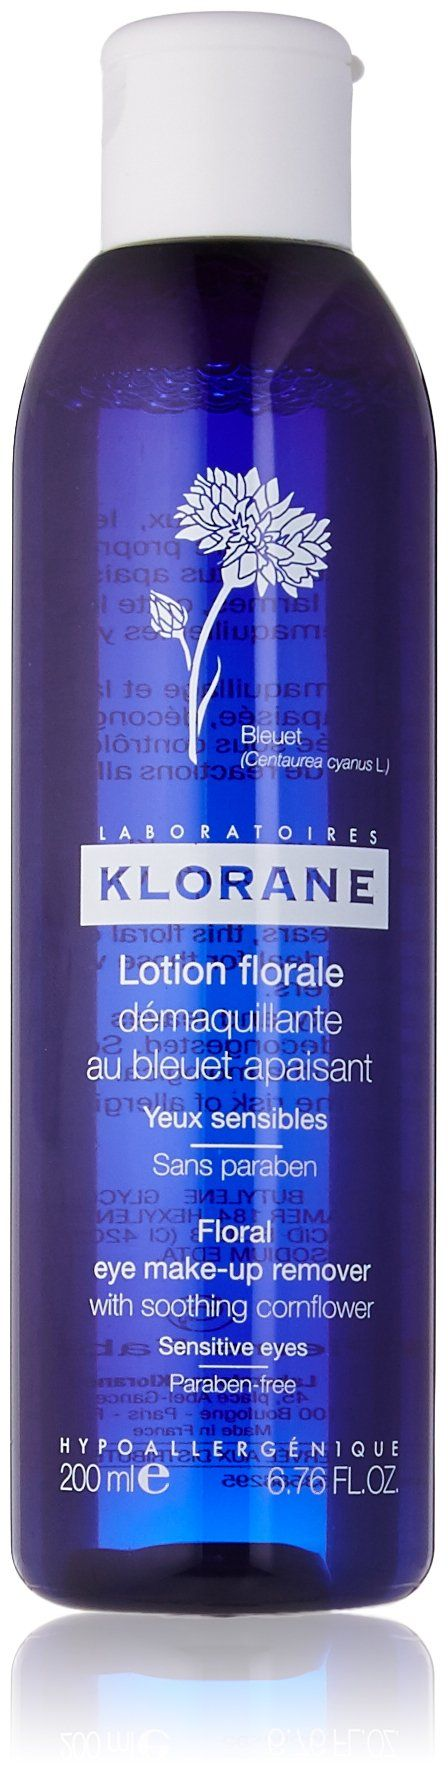 Klorane Eye MakeUp Remover with Soothing Cornflower 6.7 fl